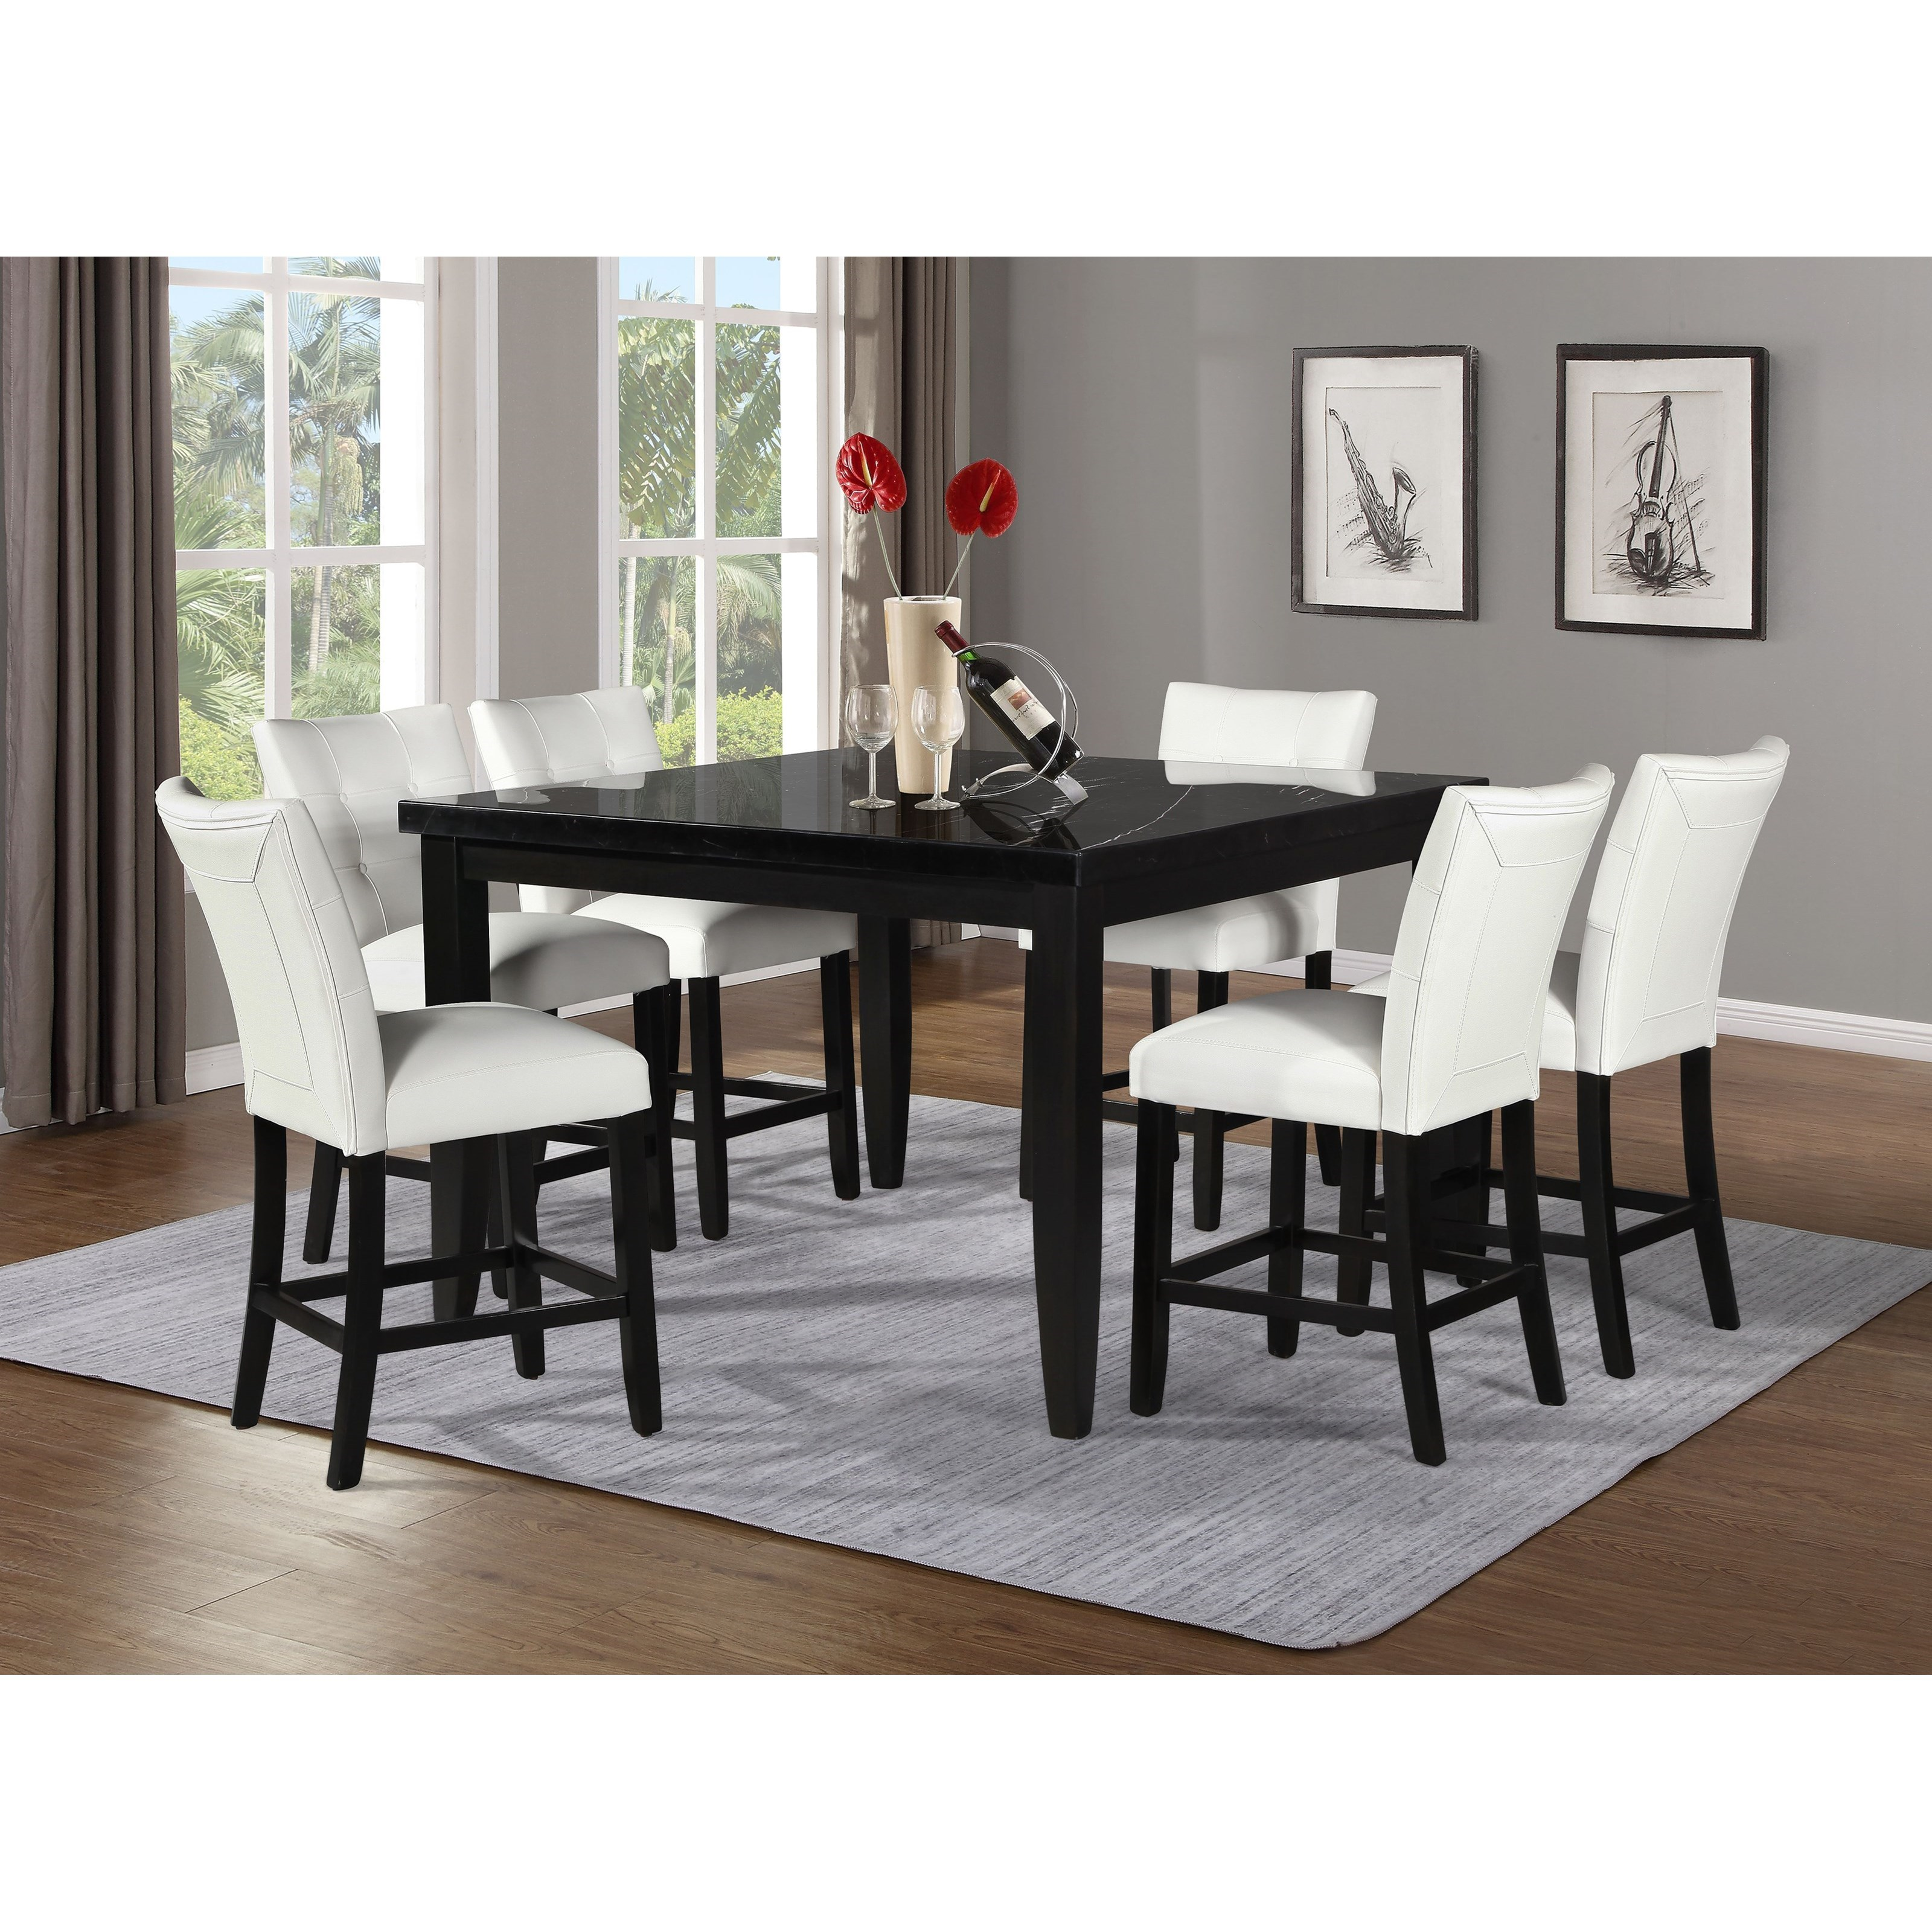 Sidney Sidney 7-Piece Counter Table and Chair Set by Steve Silver at Morris Home